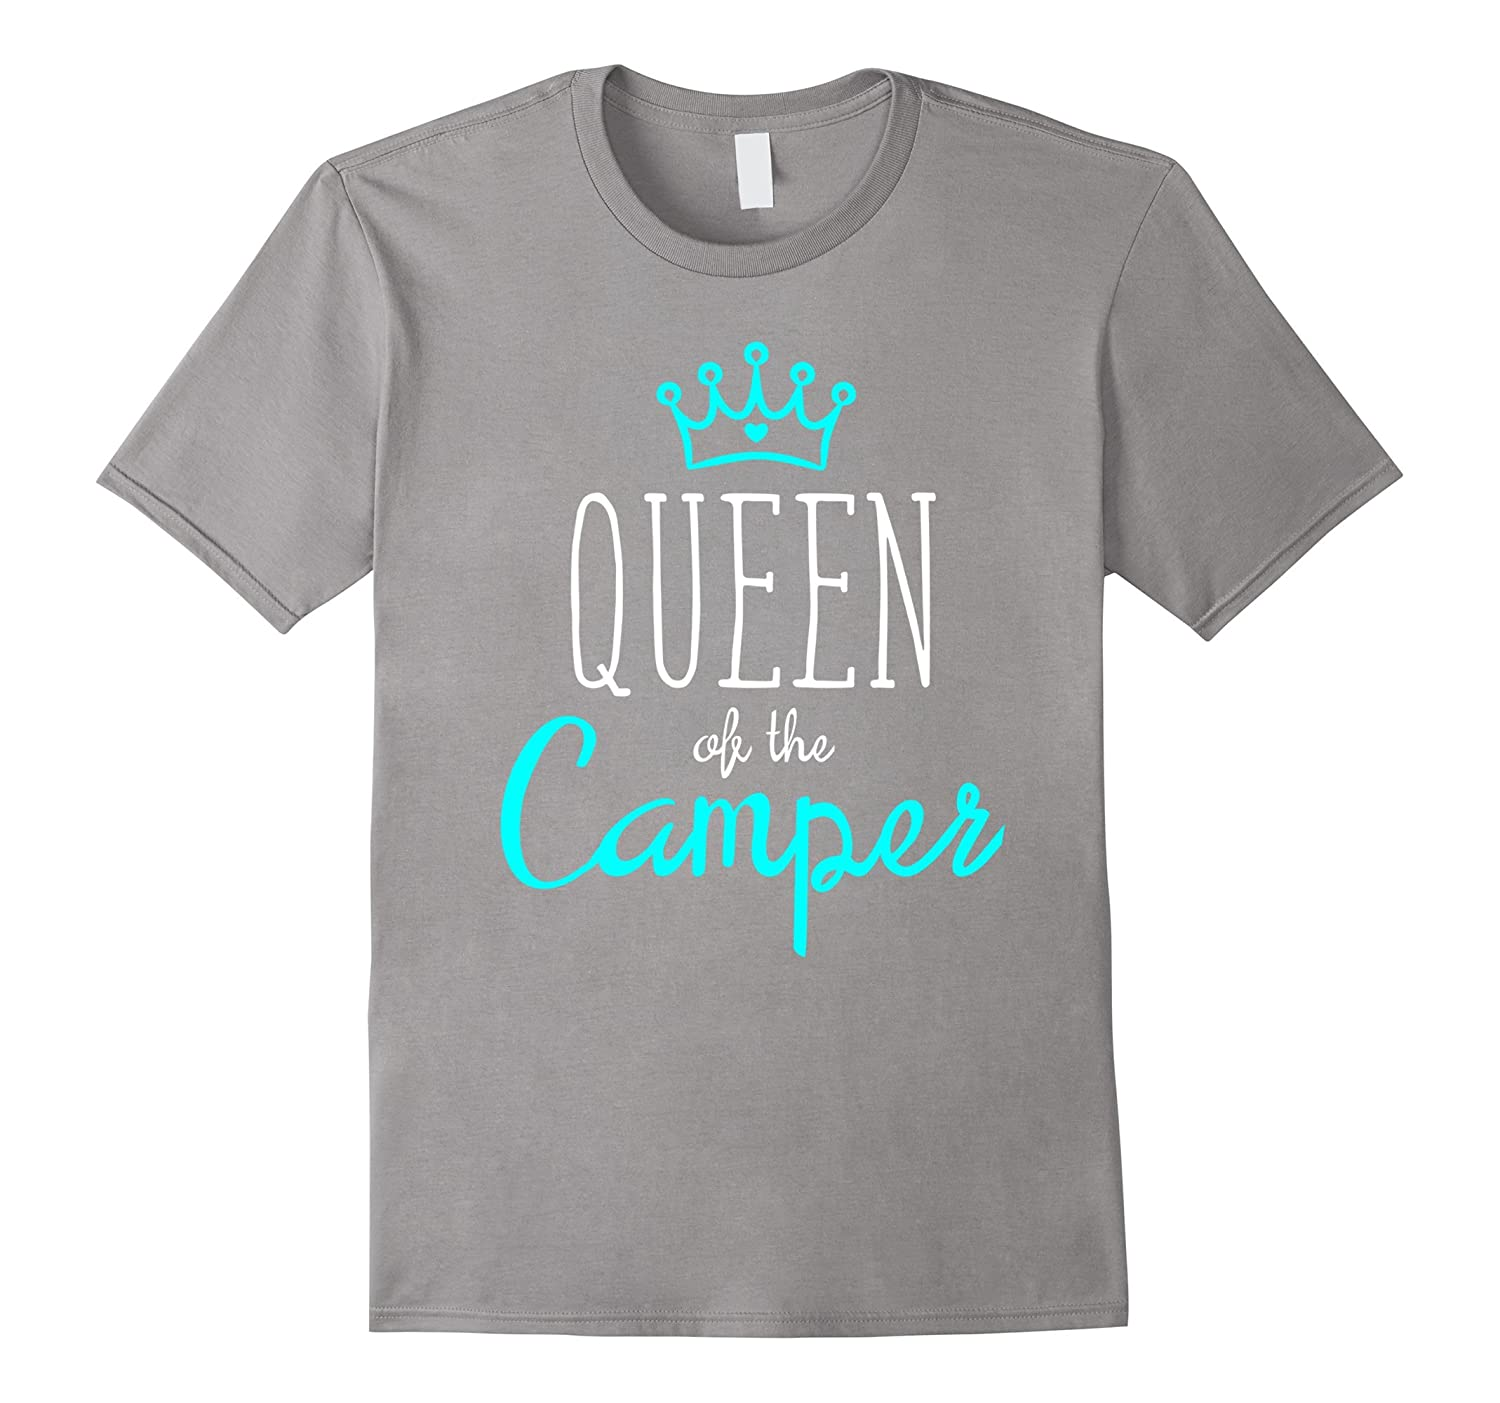 a9cd0ef1c Camper Girl Shirt Queen of Camping Funny Camp Woman Gift-RT – Rateeshirt